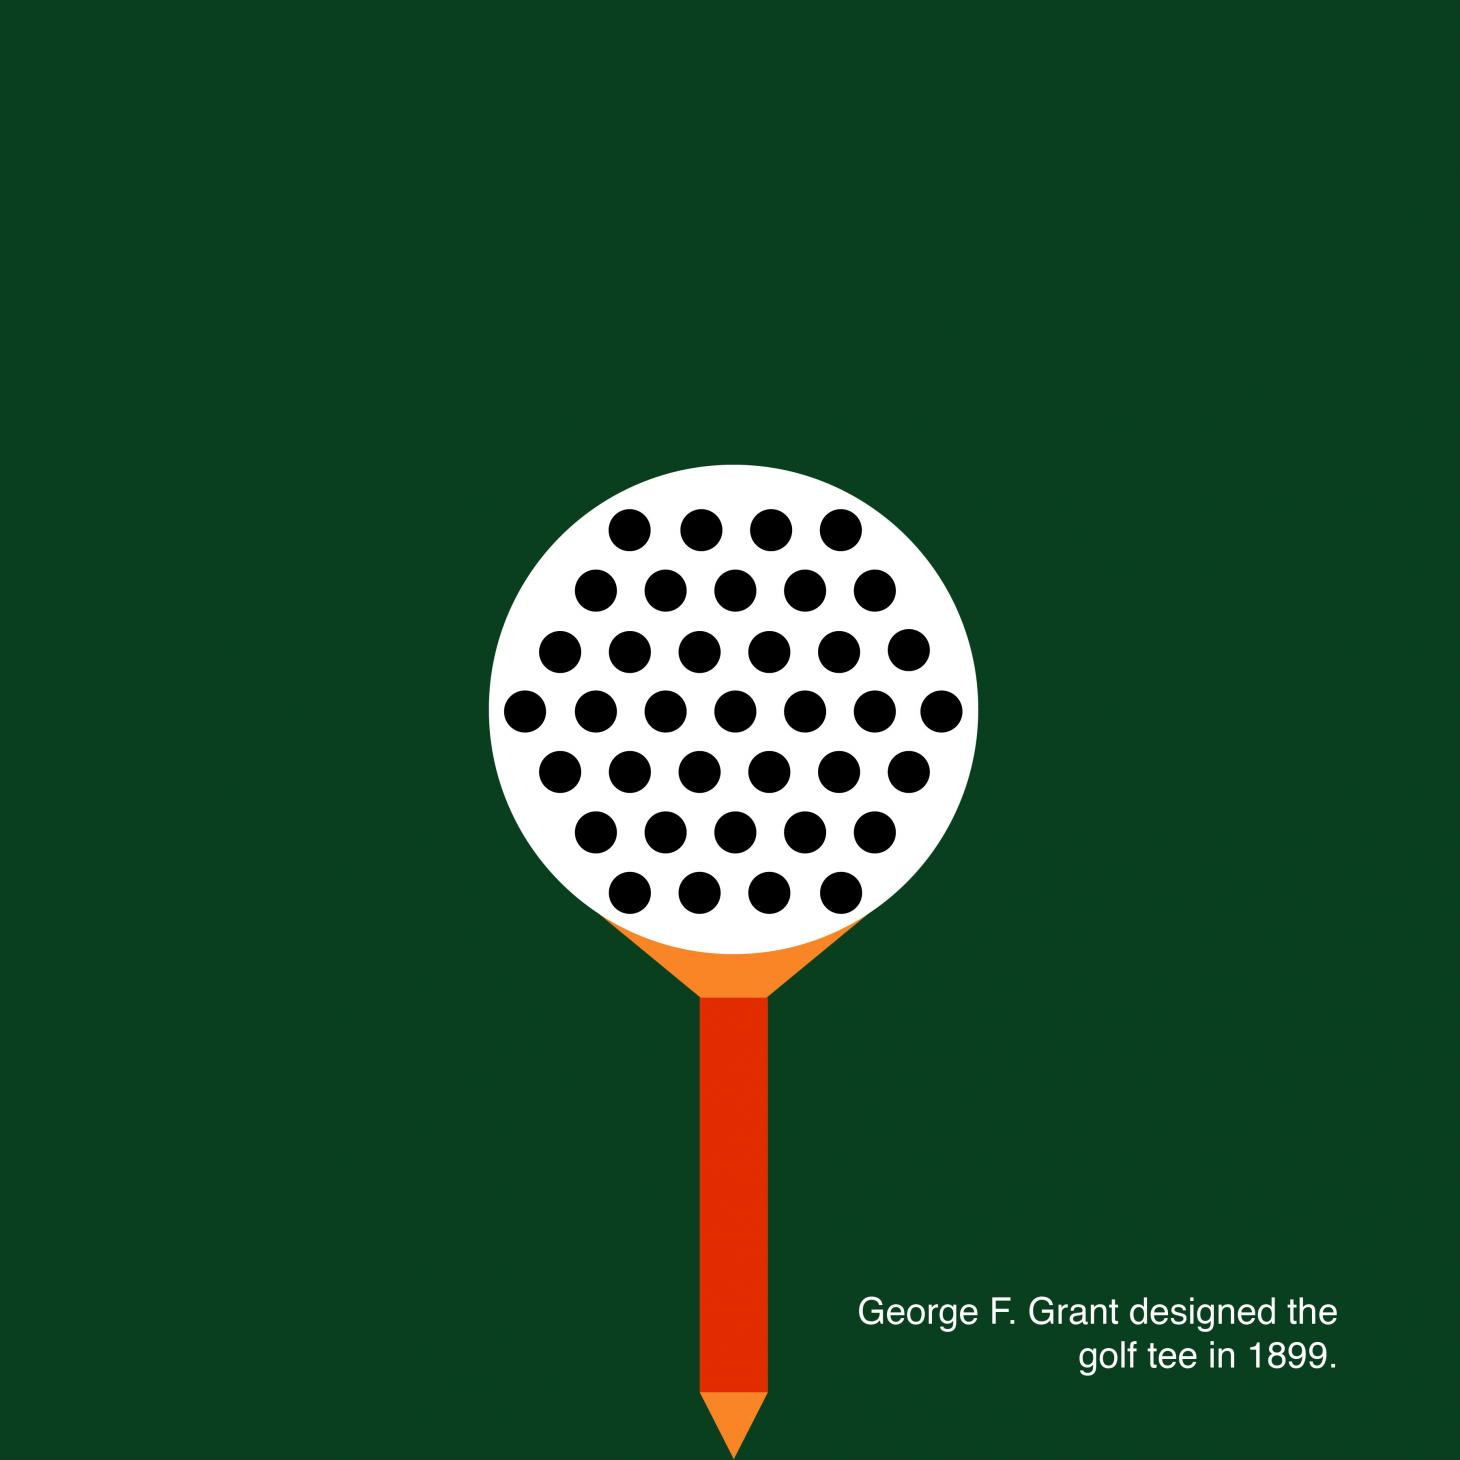 A graphic with a green background and stylized illustration of a golf tee and ball, with text explaining that the gold tee was originally conceived by George F. Grant in 1899